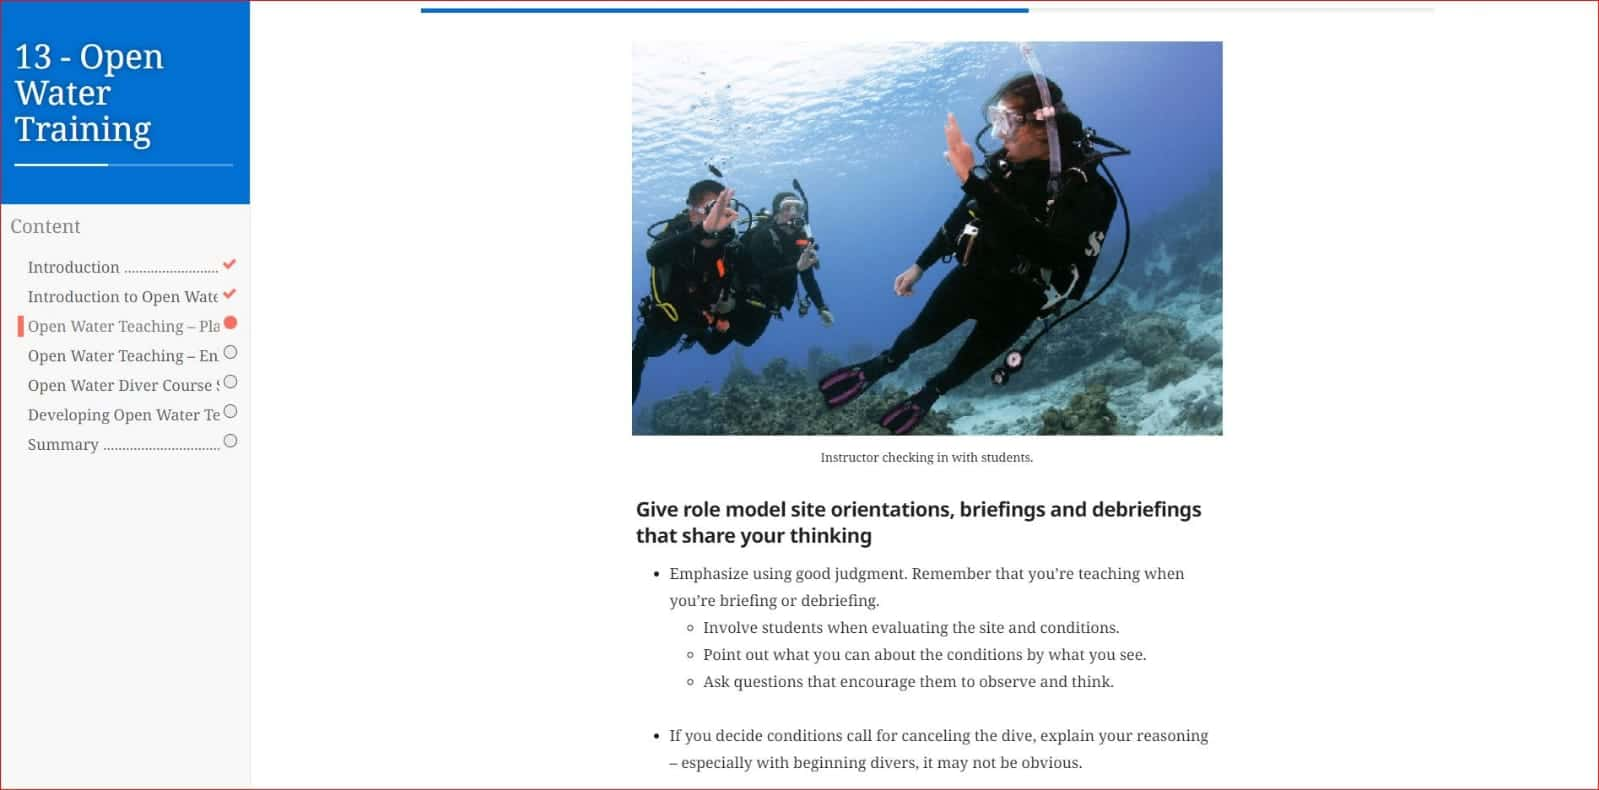 PADI's New, Revamped Instructor Development Course Unveiled At DEMA Show 2019